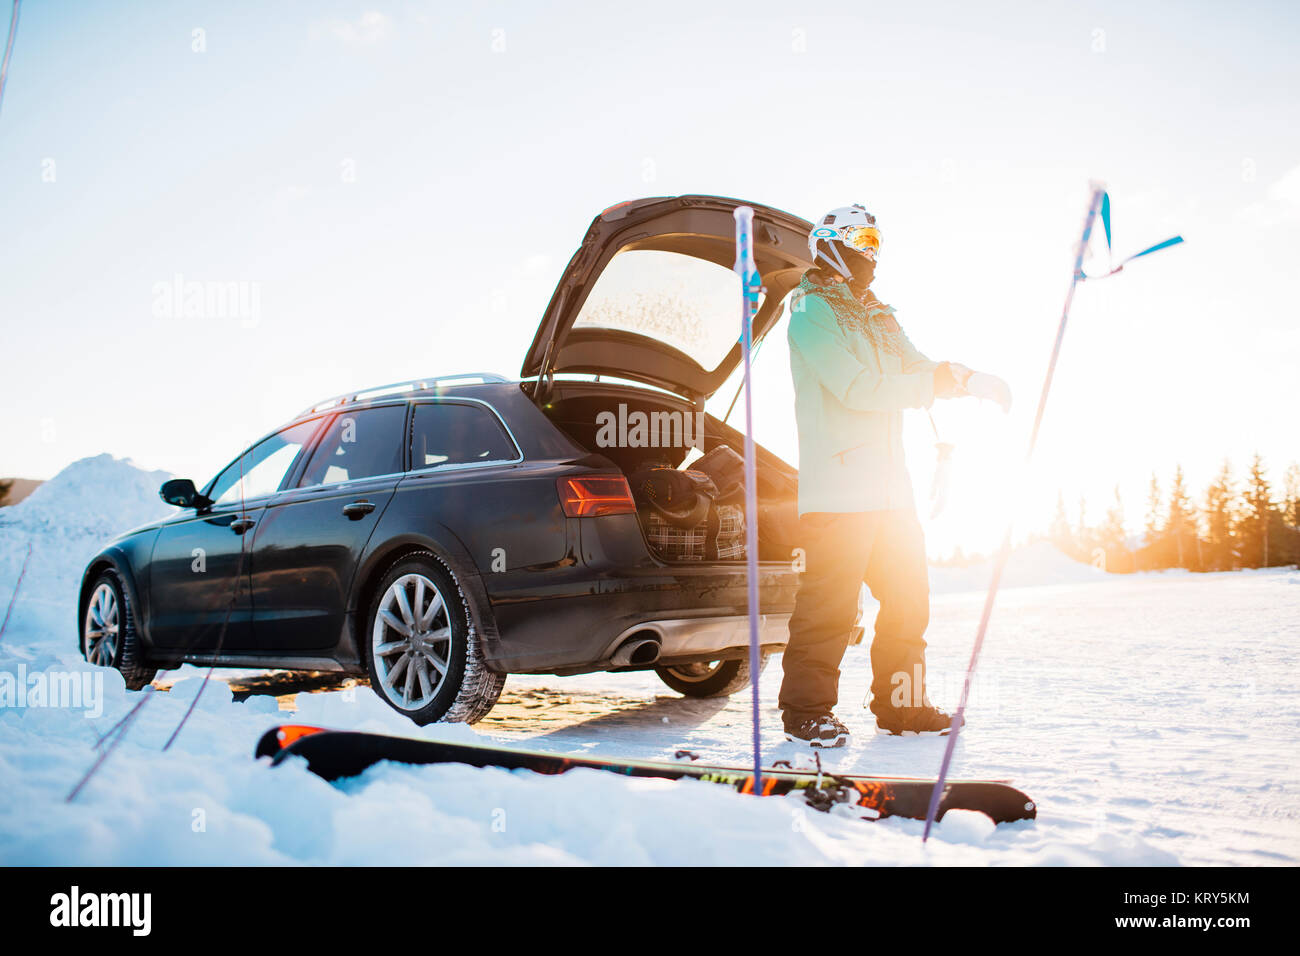 Man by a car with skiing equipment in Osterdalen, Norway - Stock Image